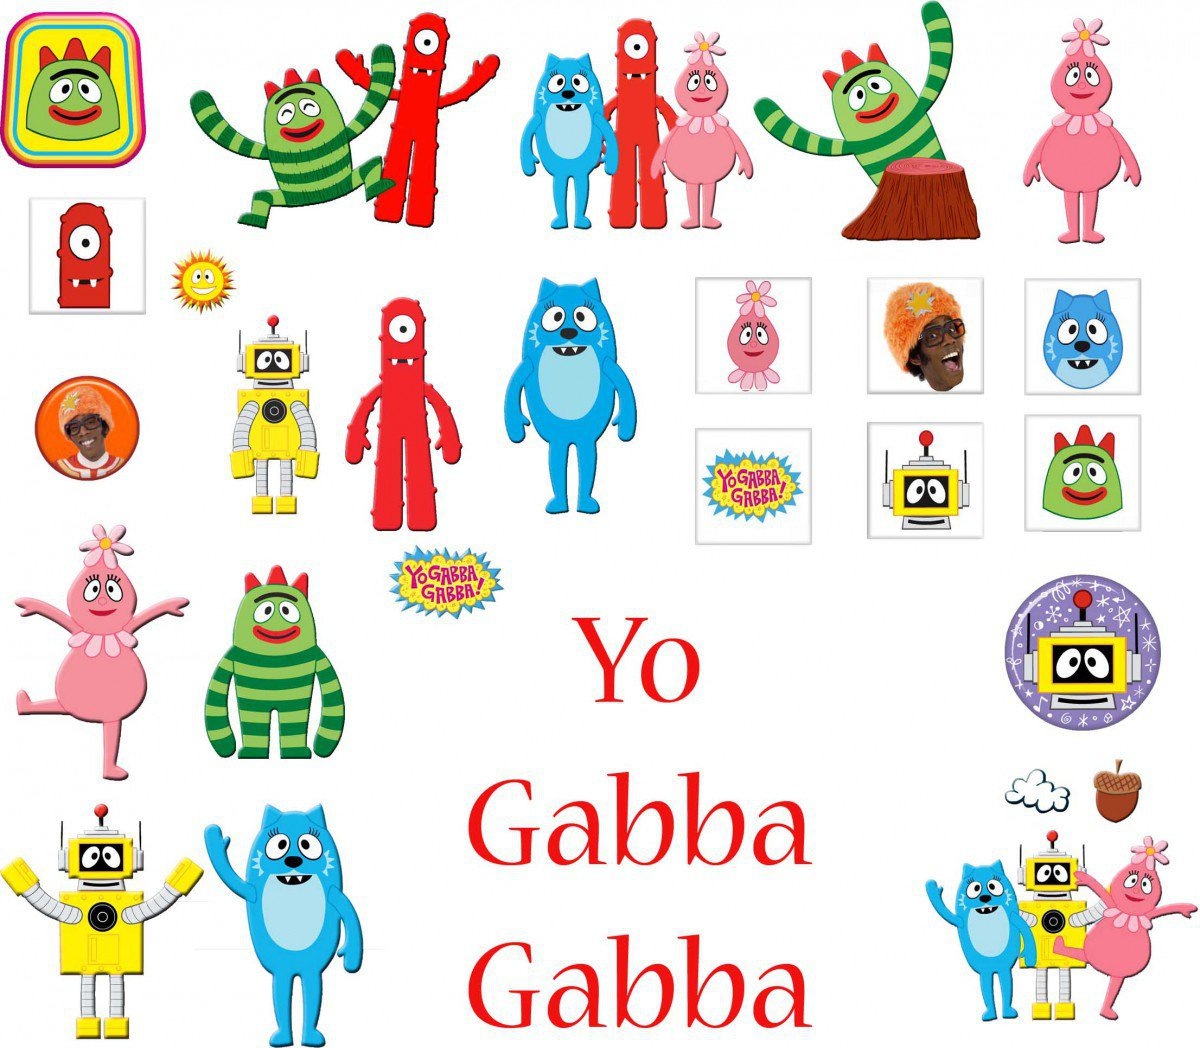 Yo Gabba Gabba Printable Invitations Free 2015